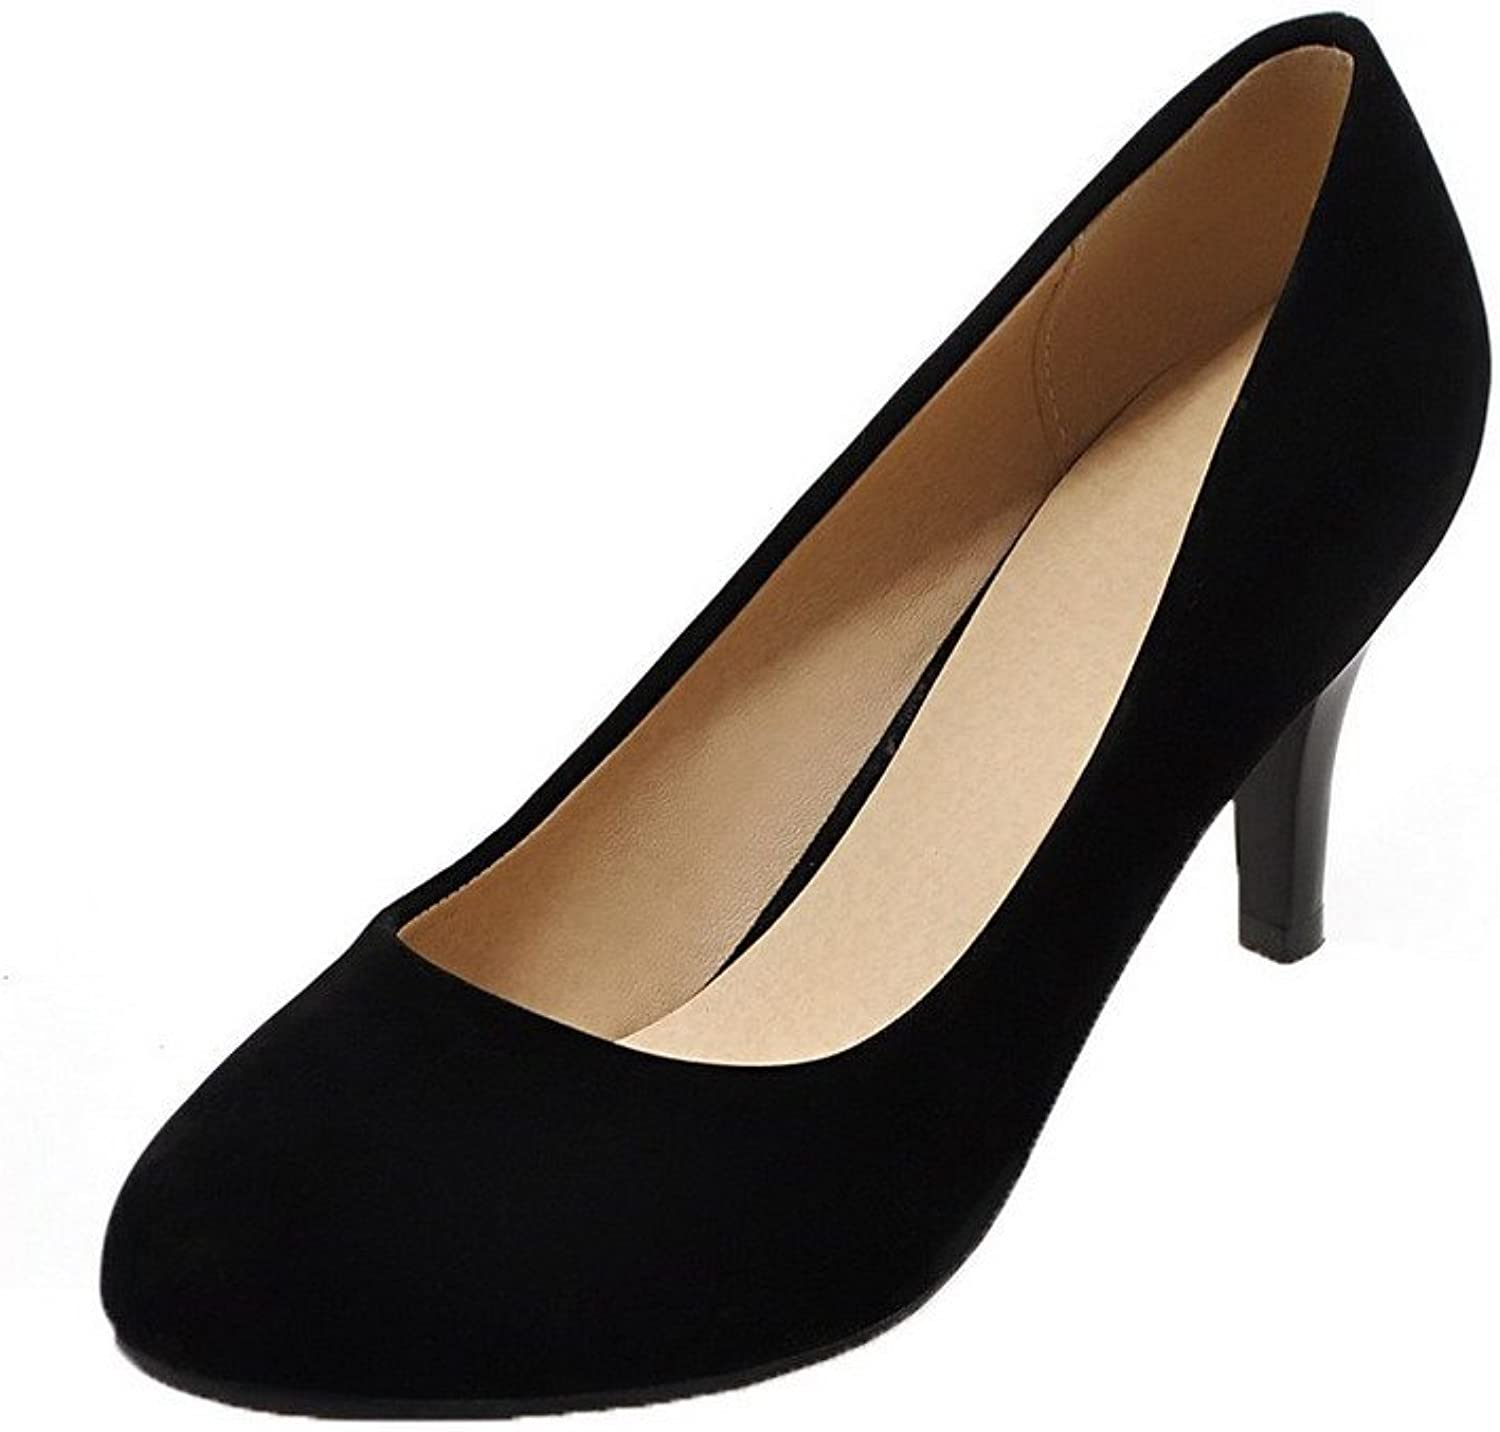 WeiPoot Women's Pull-On High-Heels Frosted Solid Round-Toe Pumps-shoes